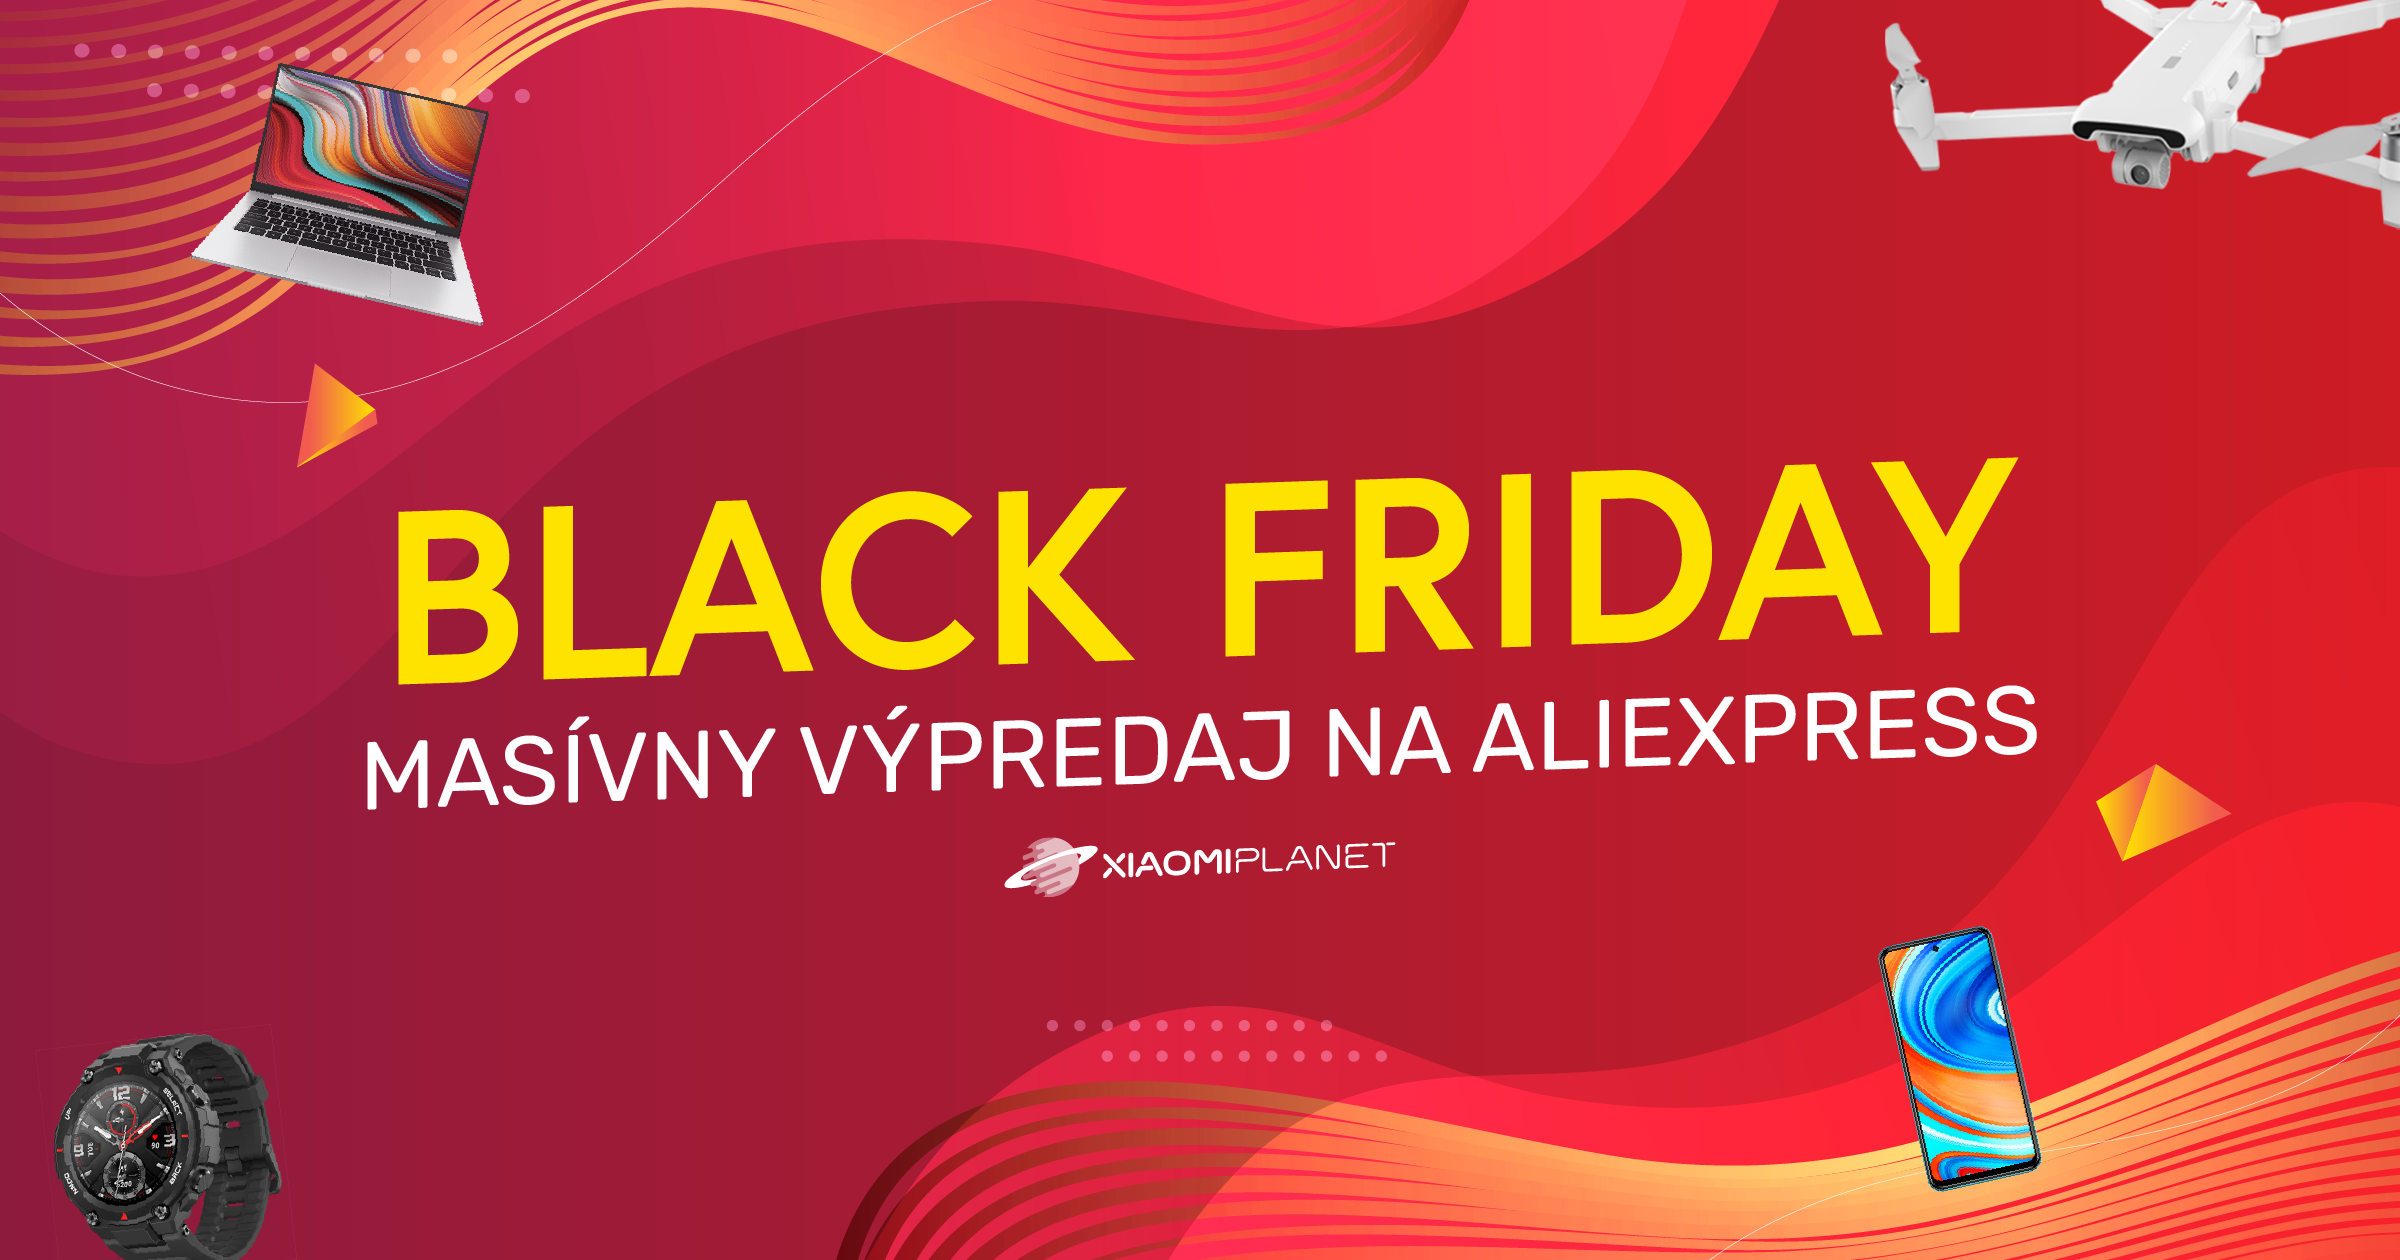 Black Friday 2020 At Aliexpress A Guide On How To Save As Much As Possible